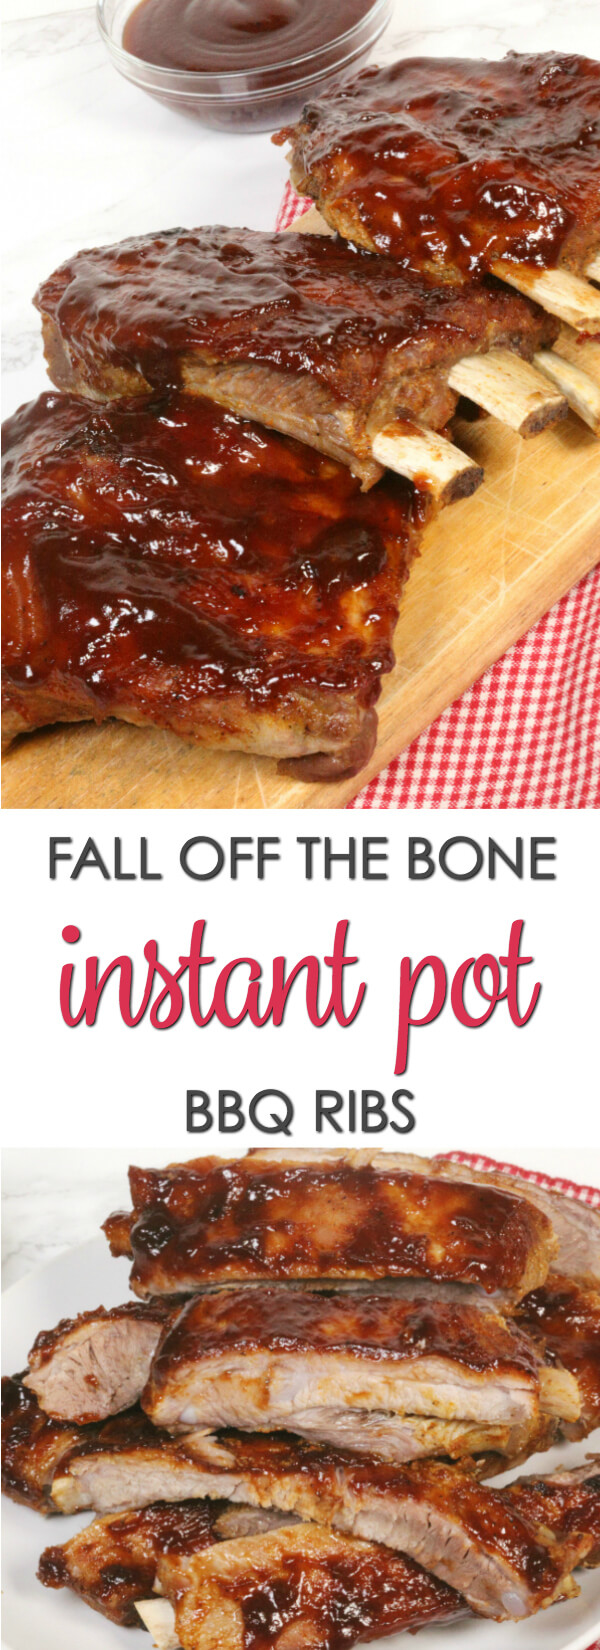 These INSTANT POT BBQ RIBS are easy and tasty! The homemade rub adds so much flavor and the sauce gets sticky and gooey.  You get all of the flavor and tenderness of slow cooked ribs without the time commitment.  www.itisakeeper.com  #itisakeeper #ribs #pressurecooker #instantpot #bbq #easyrecipe #semihomemade #recipe